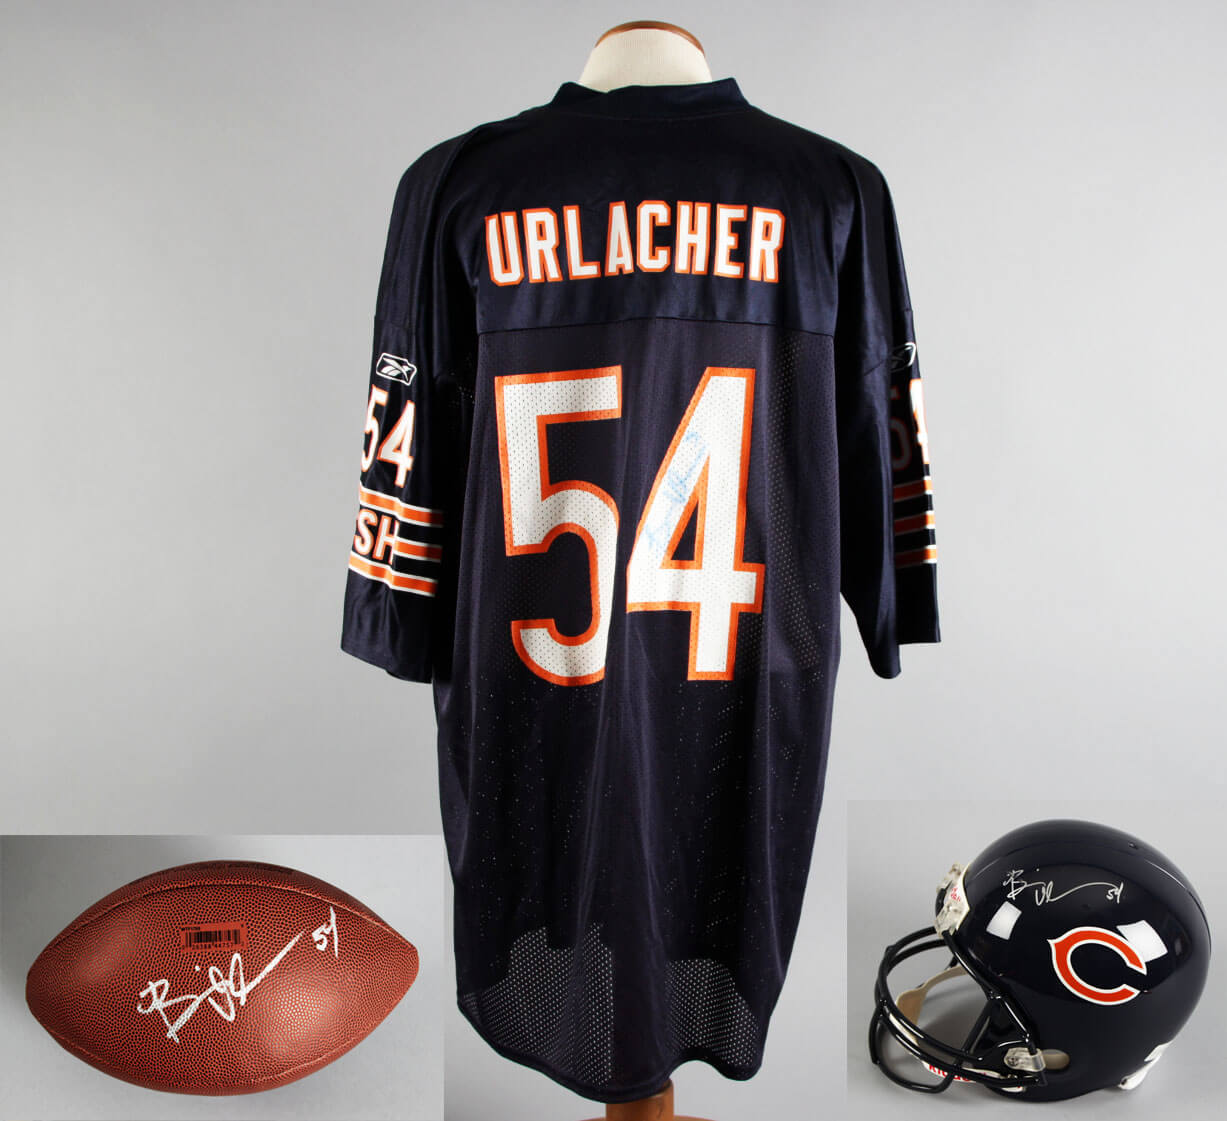 huge discount 4e425 4c398 Brian Urlacher Signed Chicago Bears Jersey, Football & Full ...